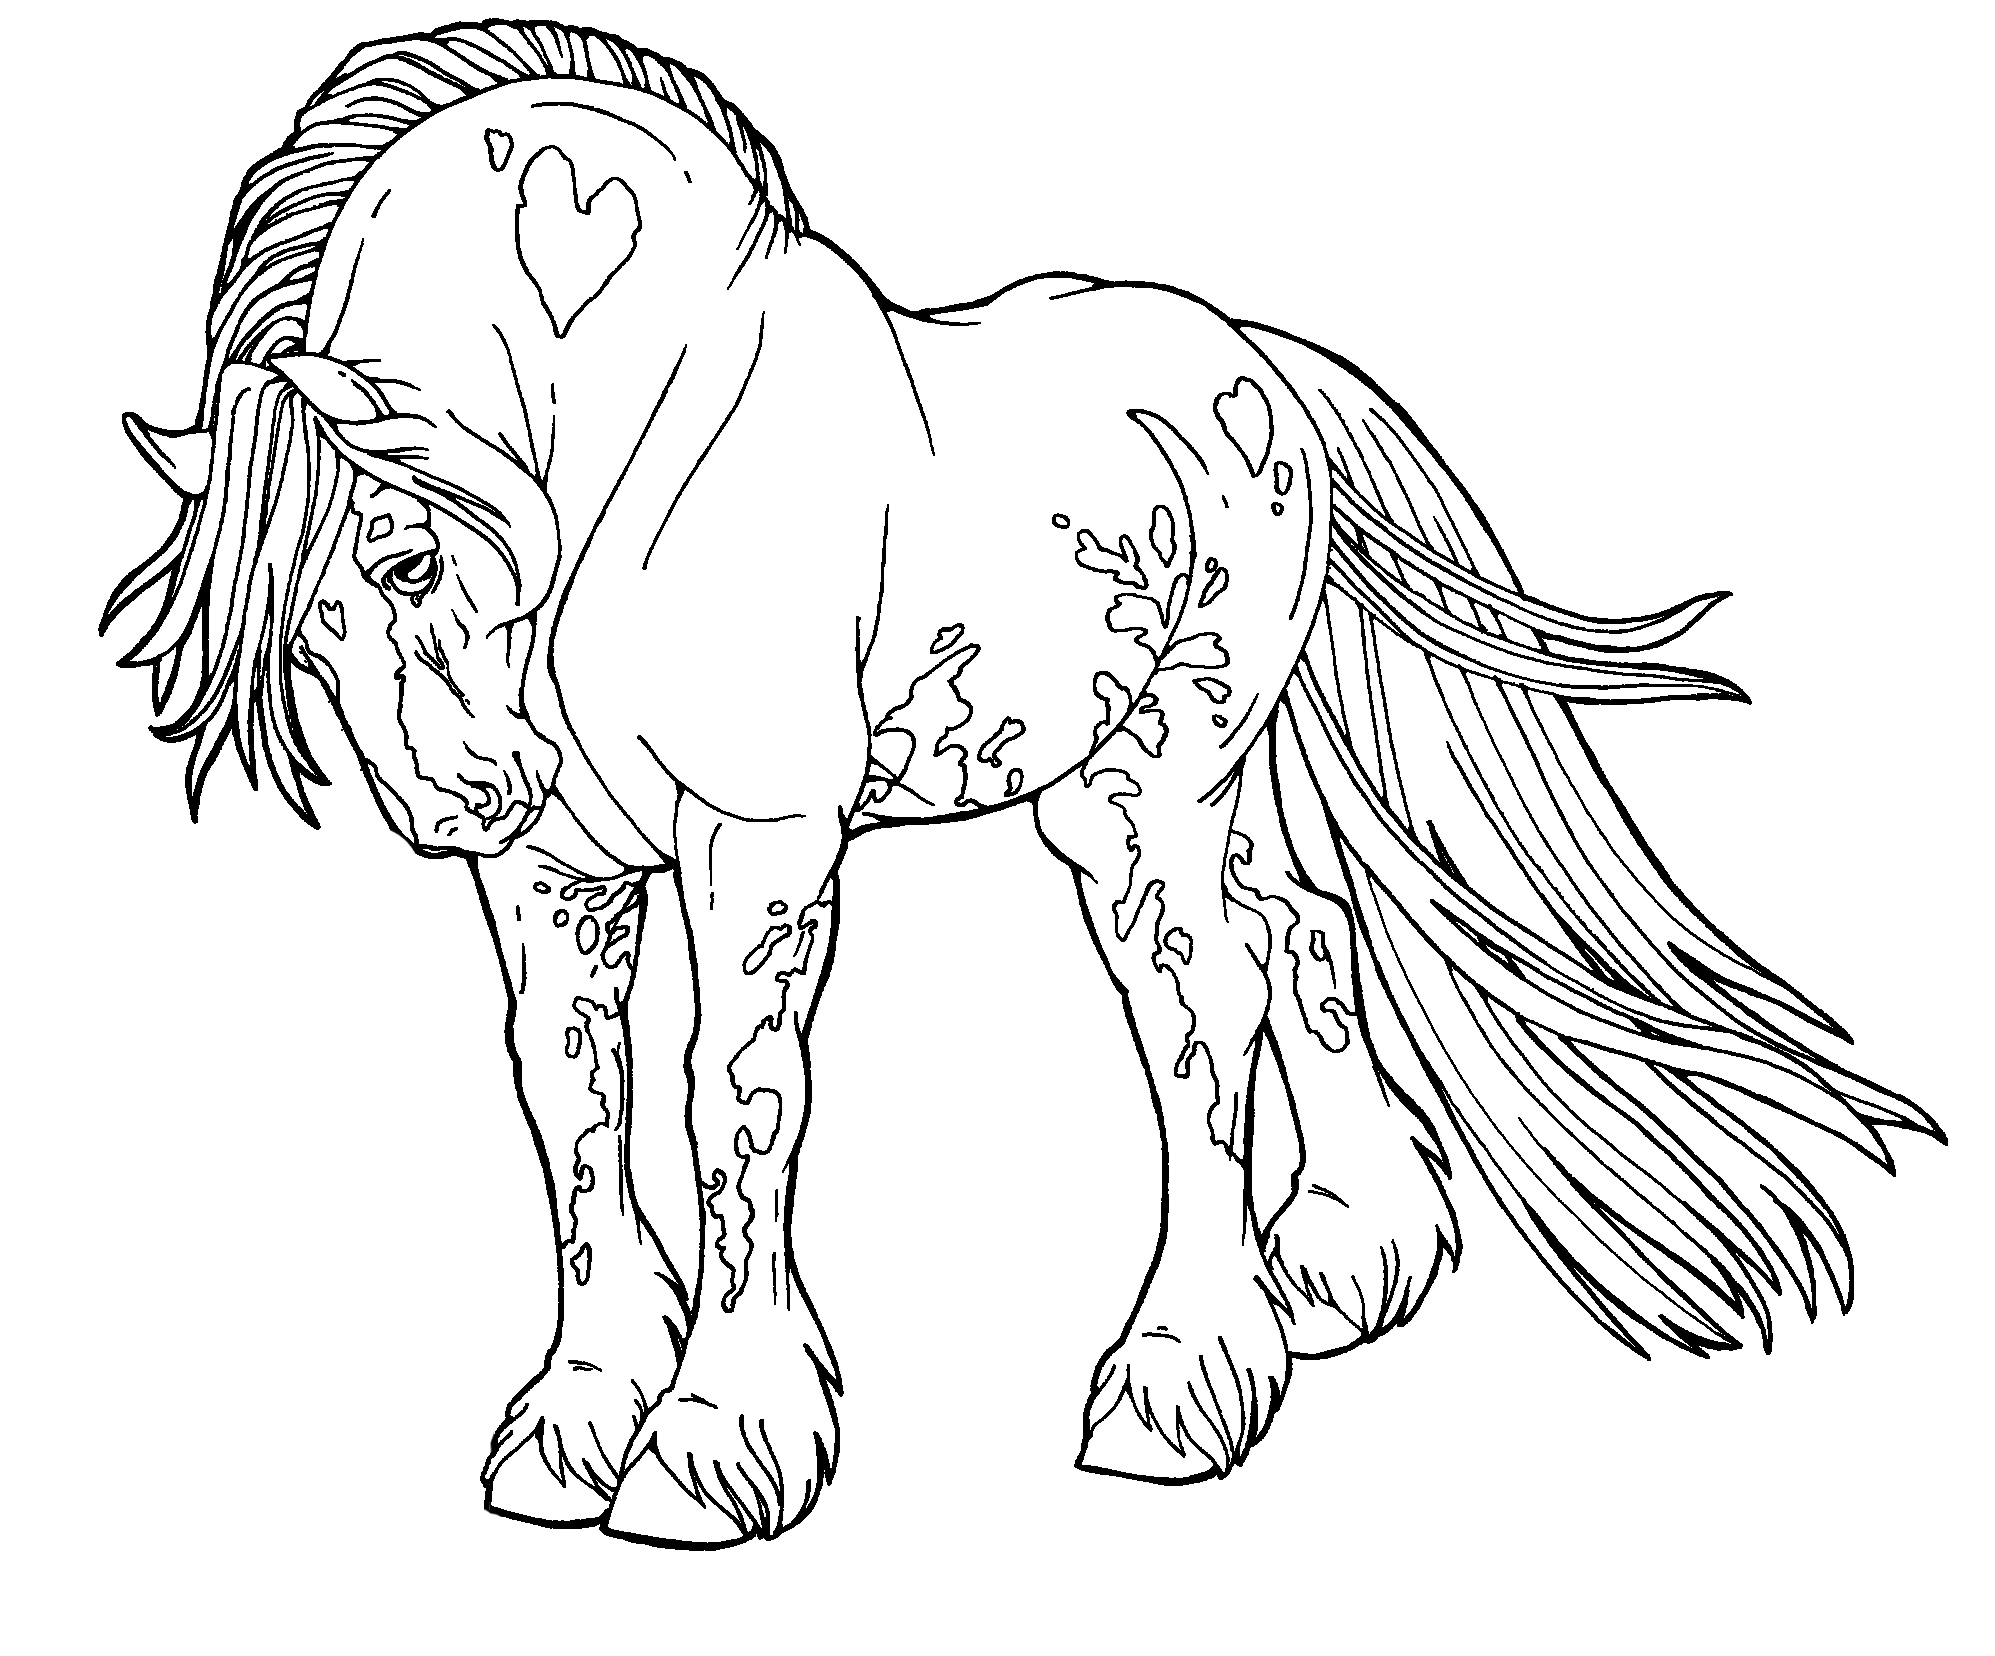 coloring book for kids 40 exclusive kids coloring pages ideas we need fun coloring book for kids